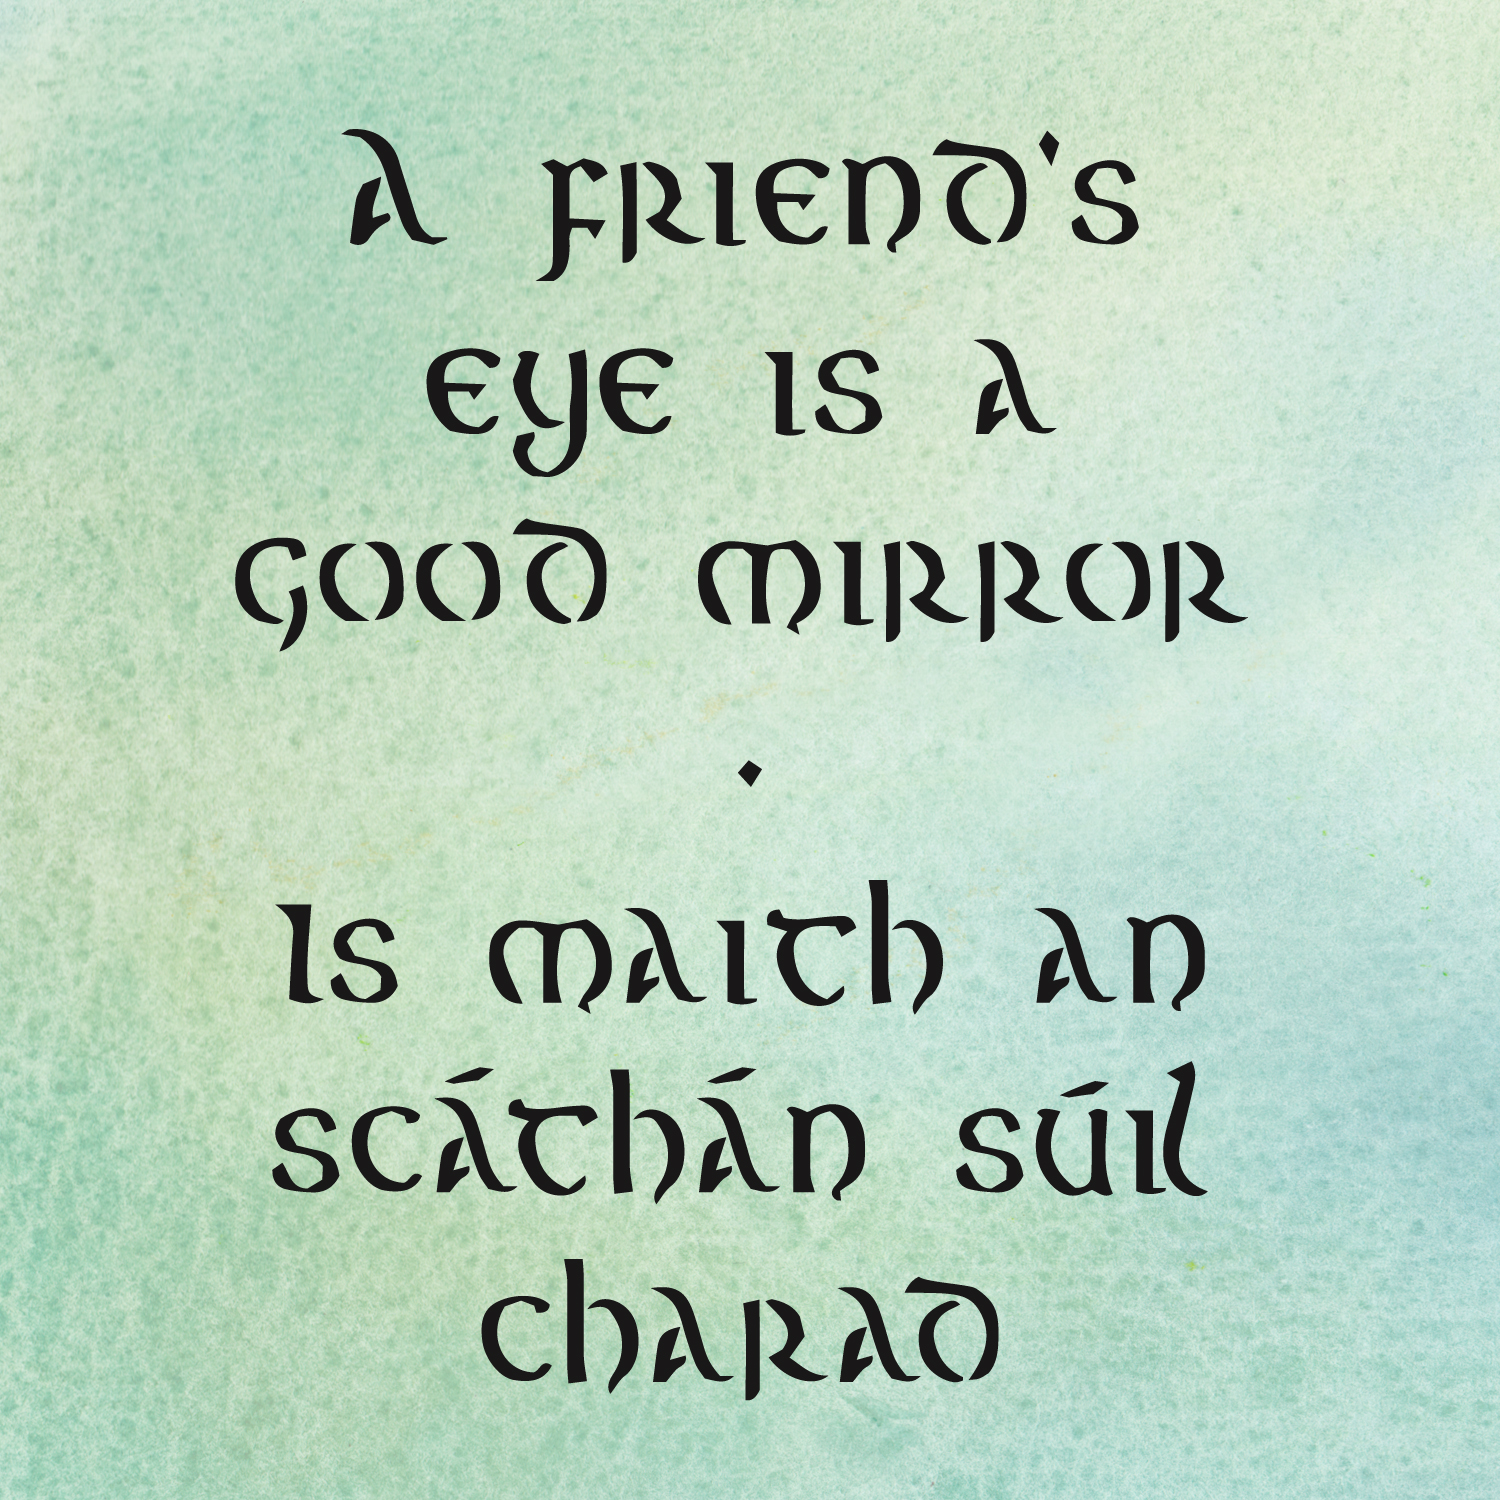 A FRIENDS EYE IS A GOOD MIRROR